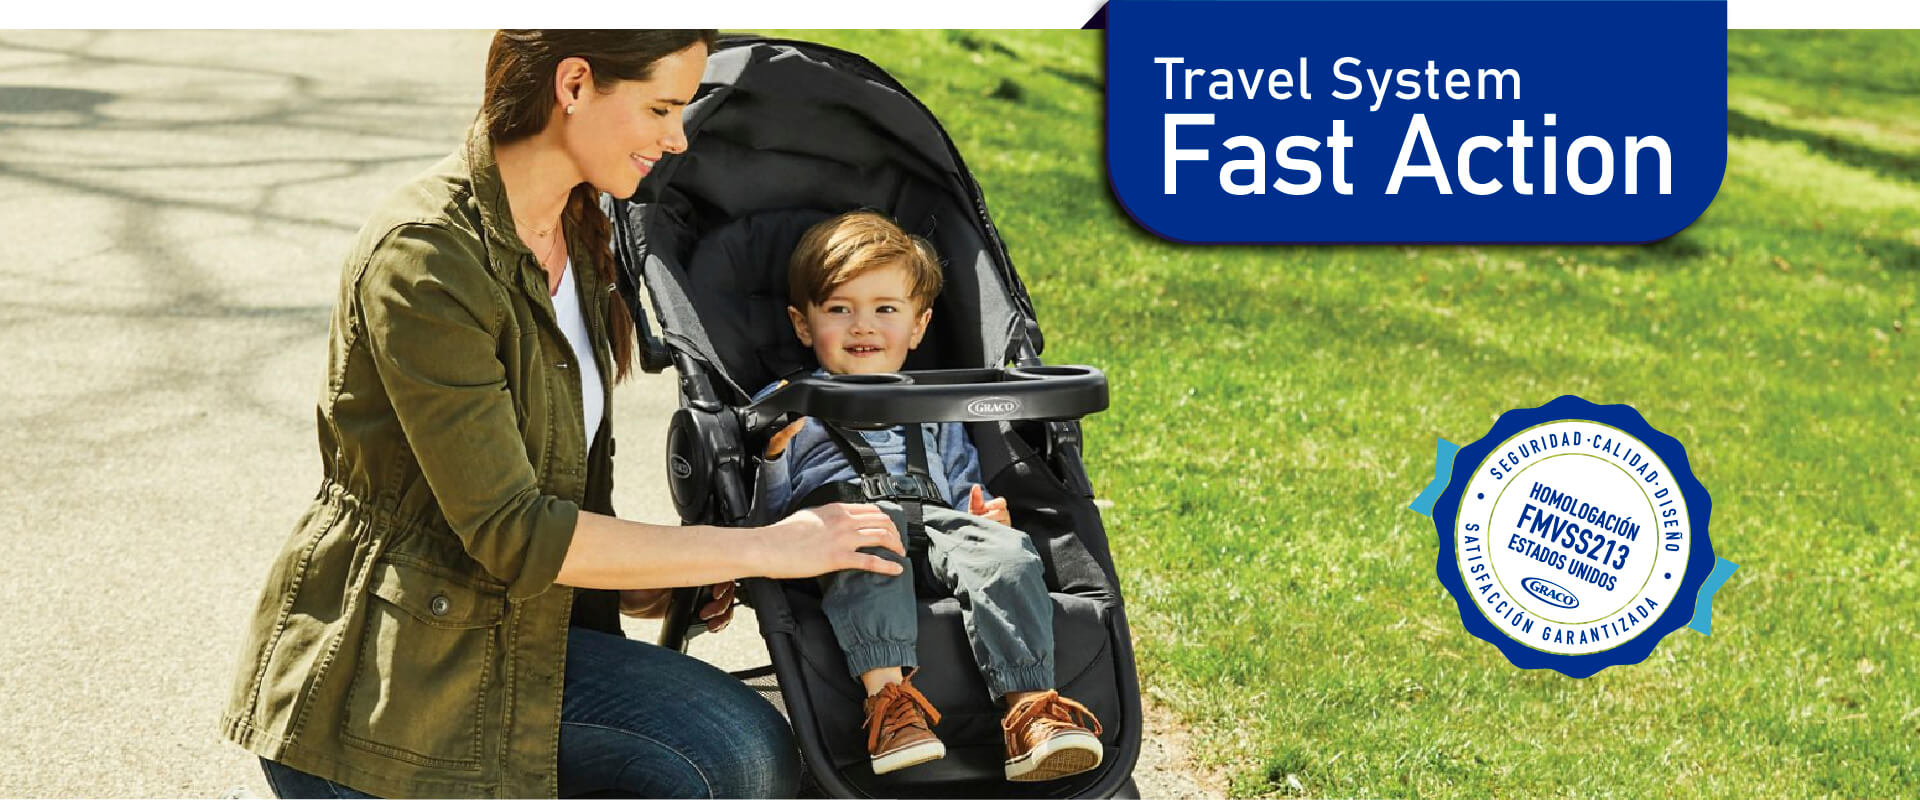 Travel System Fast Action